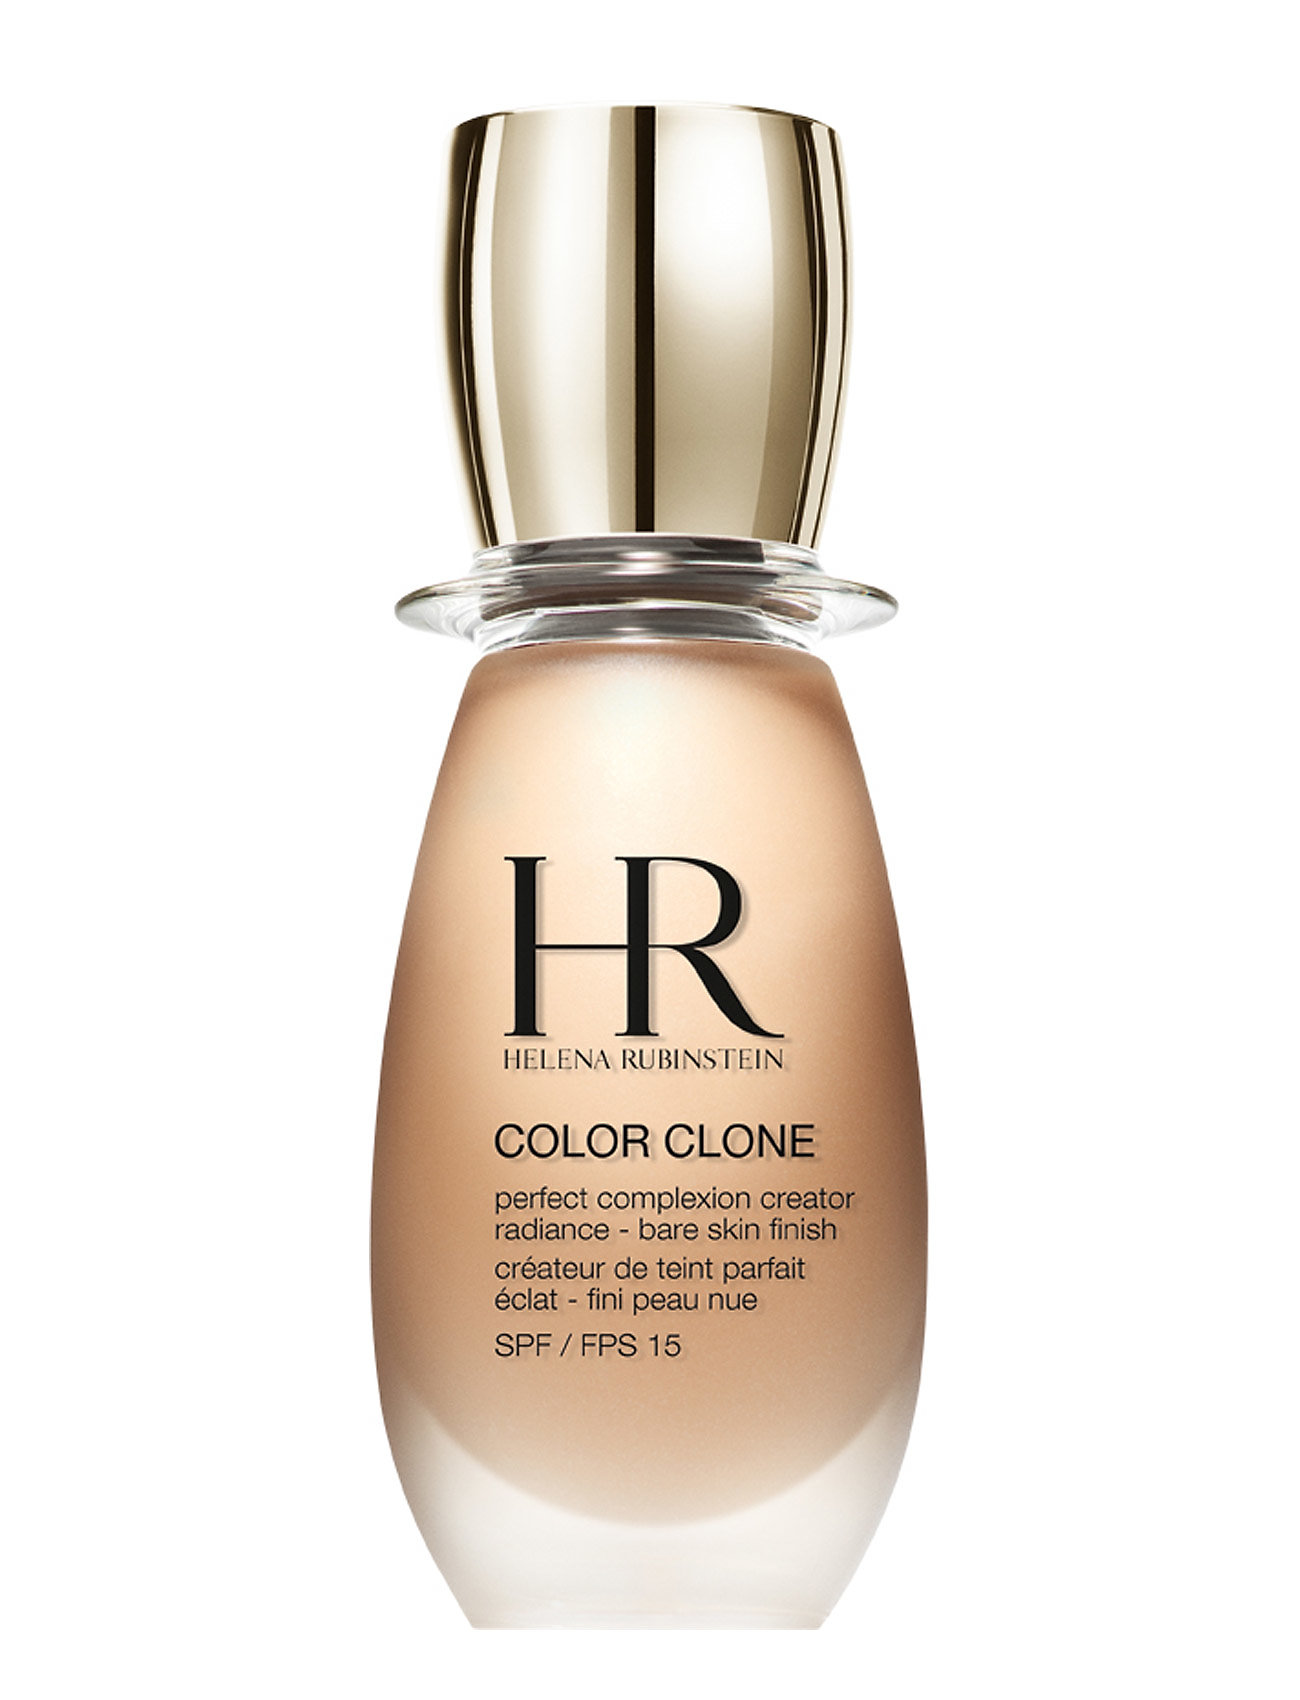 Image of Color Cl Shell 13 Foundation Makeup Helena Rubinstein (3345419547)